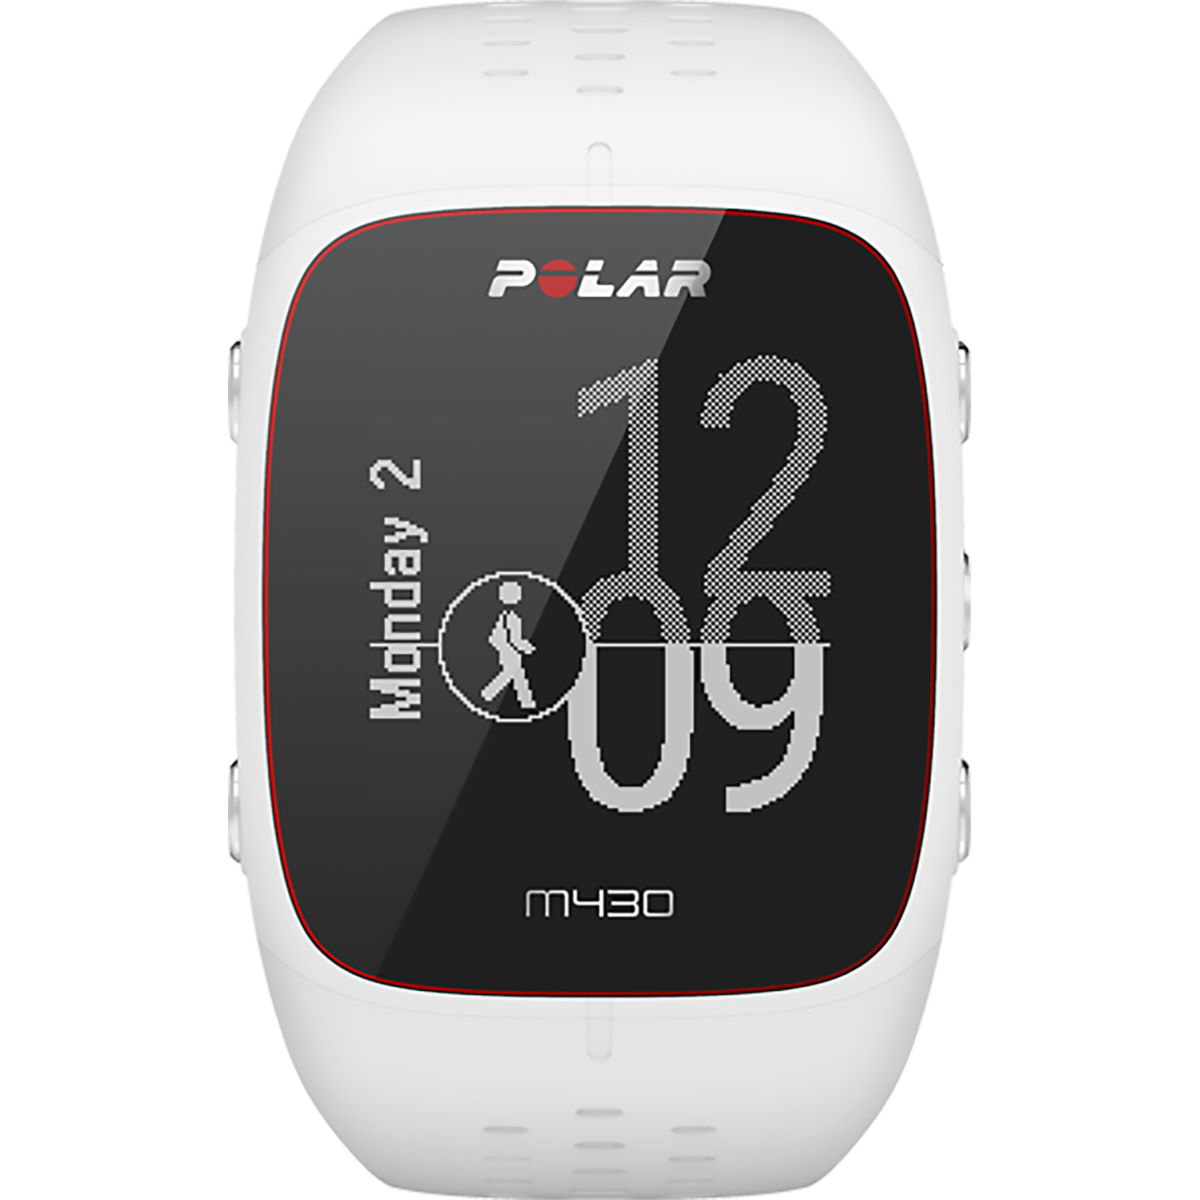 Montre de running Polar M430 GPS - Taille unique Blanc